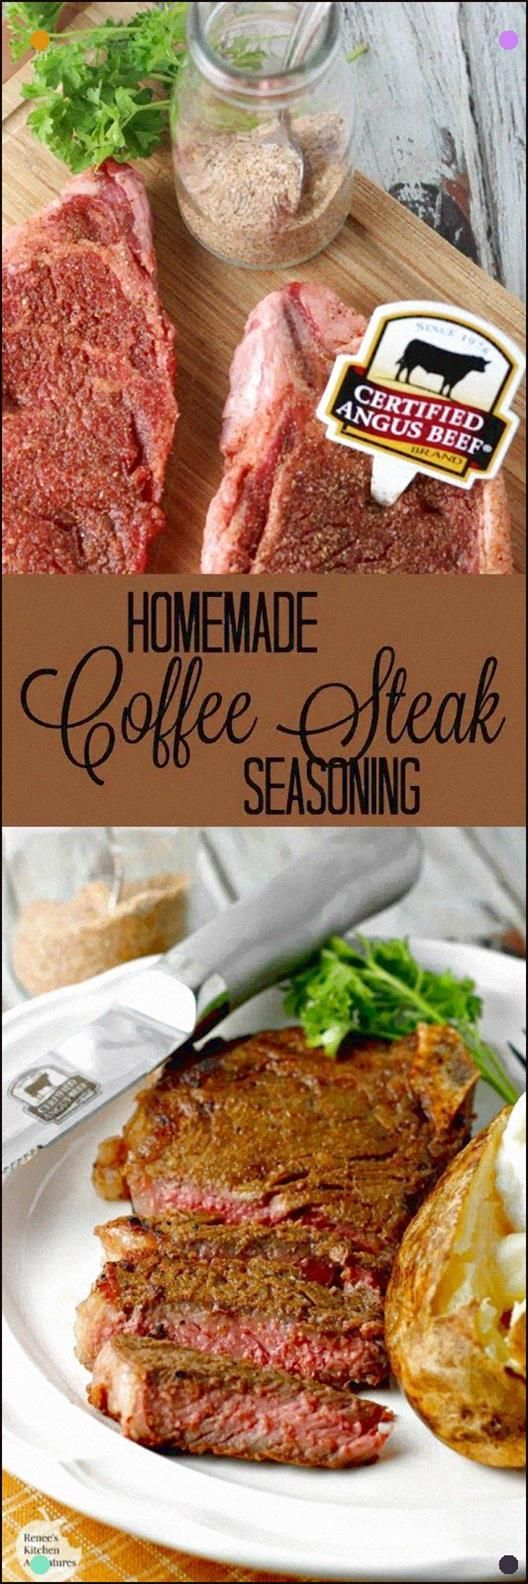 Homemade Coffee Steak Rub By Renee's Kitchen Adventures - Easy Homemade Recipe For A Steak Seasoning Made With Coffee. Immaculate On Steak, Chicken, Pork And More #Sundaysupper #steakrubs Homemade Coffee Steak Rub By Renee's Kitchen Adventures - Easy Homemade Recipe For A Steak Seasoning Made With Coffee. Immaculate On Steak, Chicken, Pork And More #Sundaysupper #steakrubs